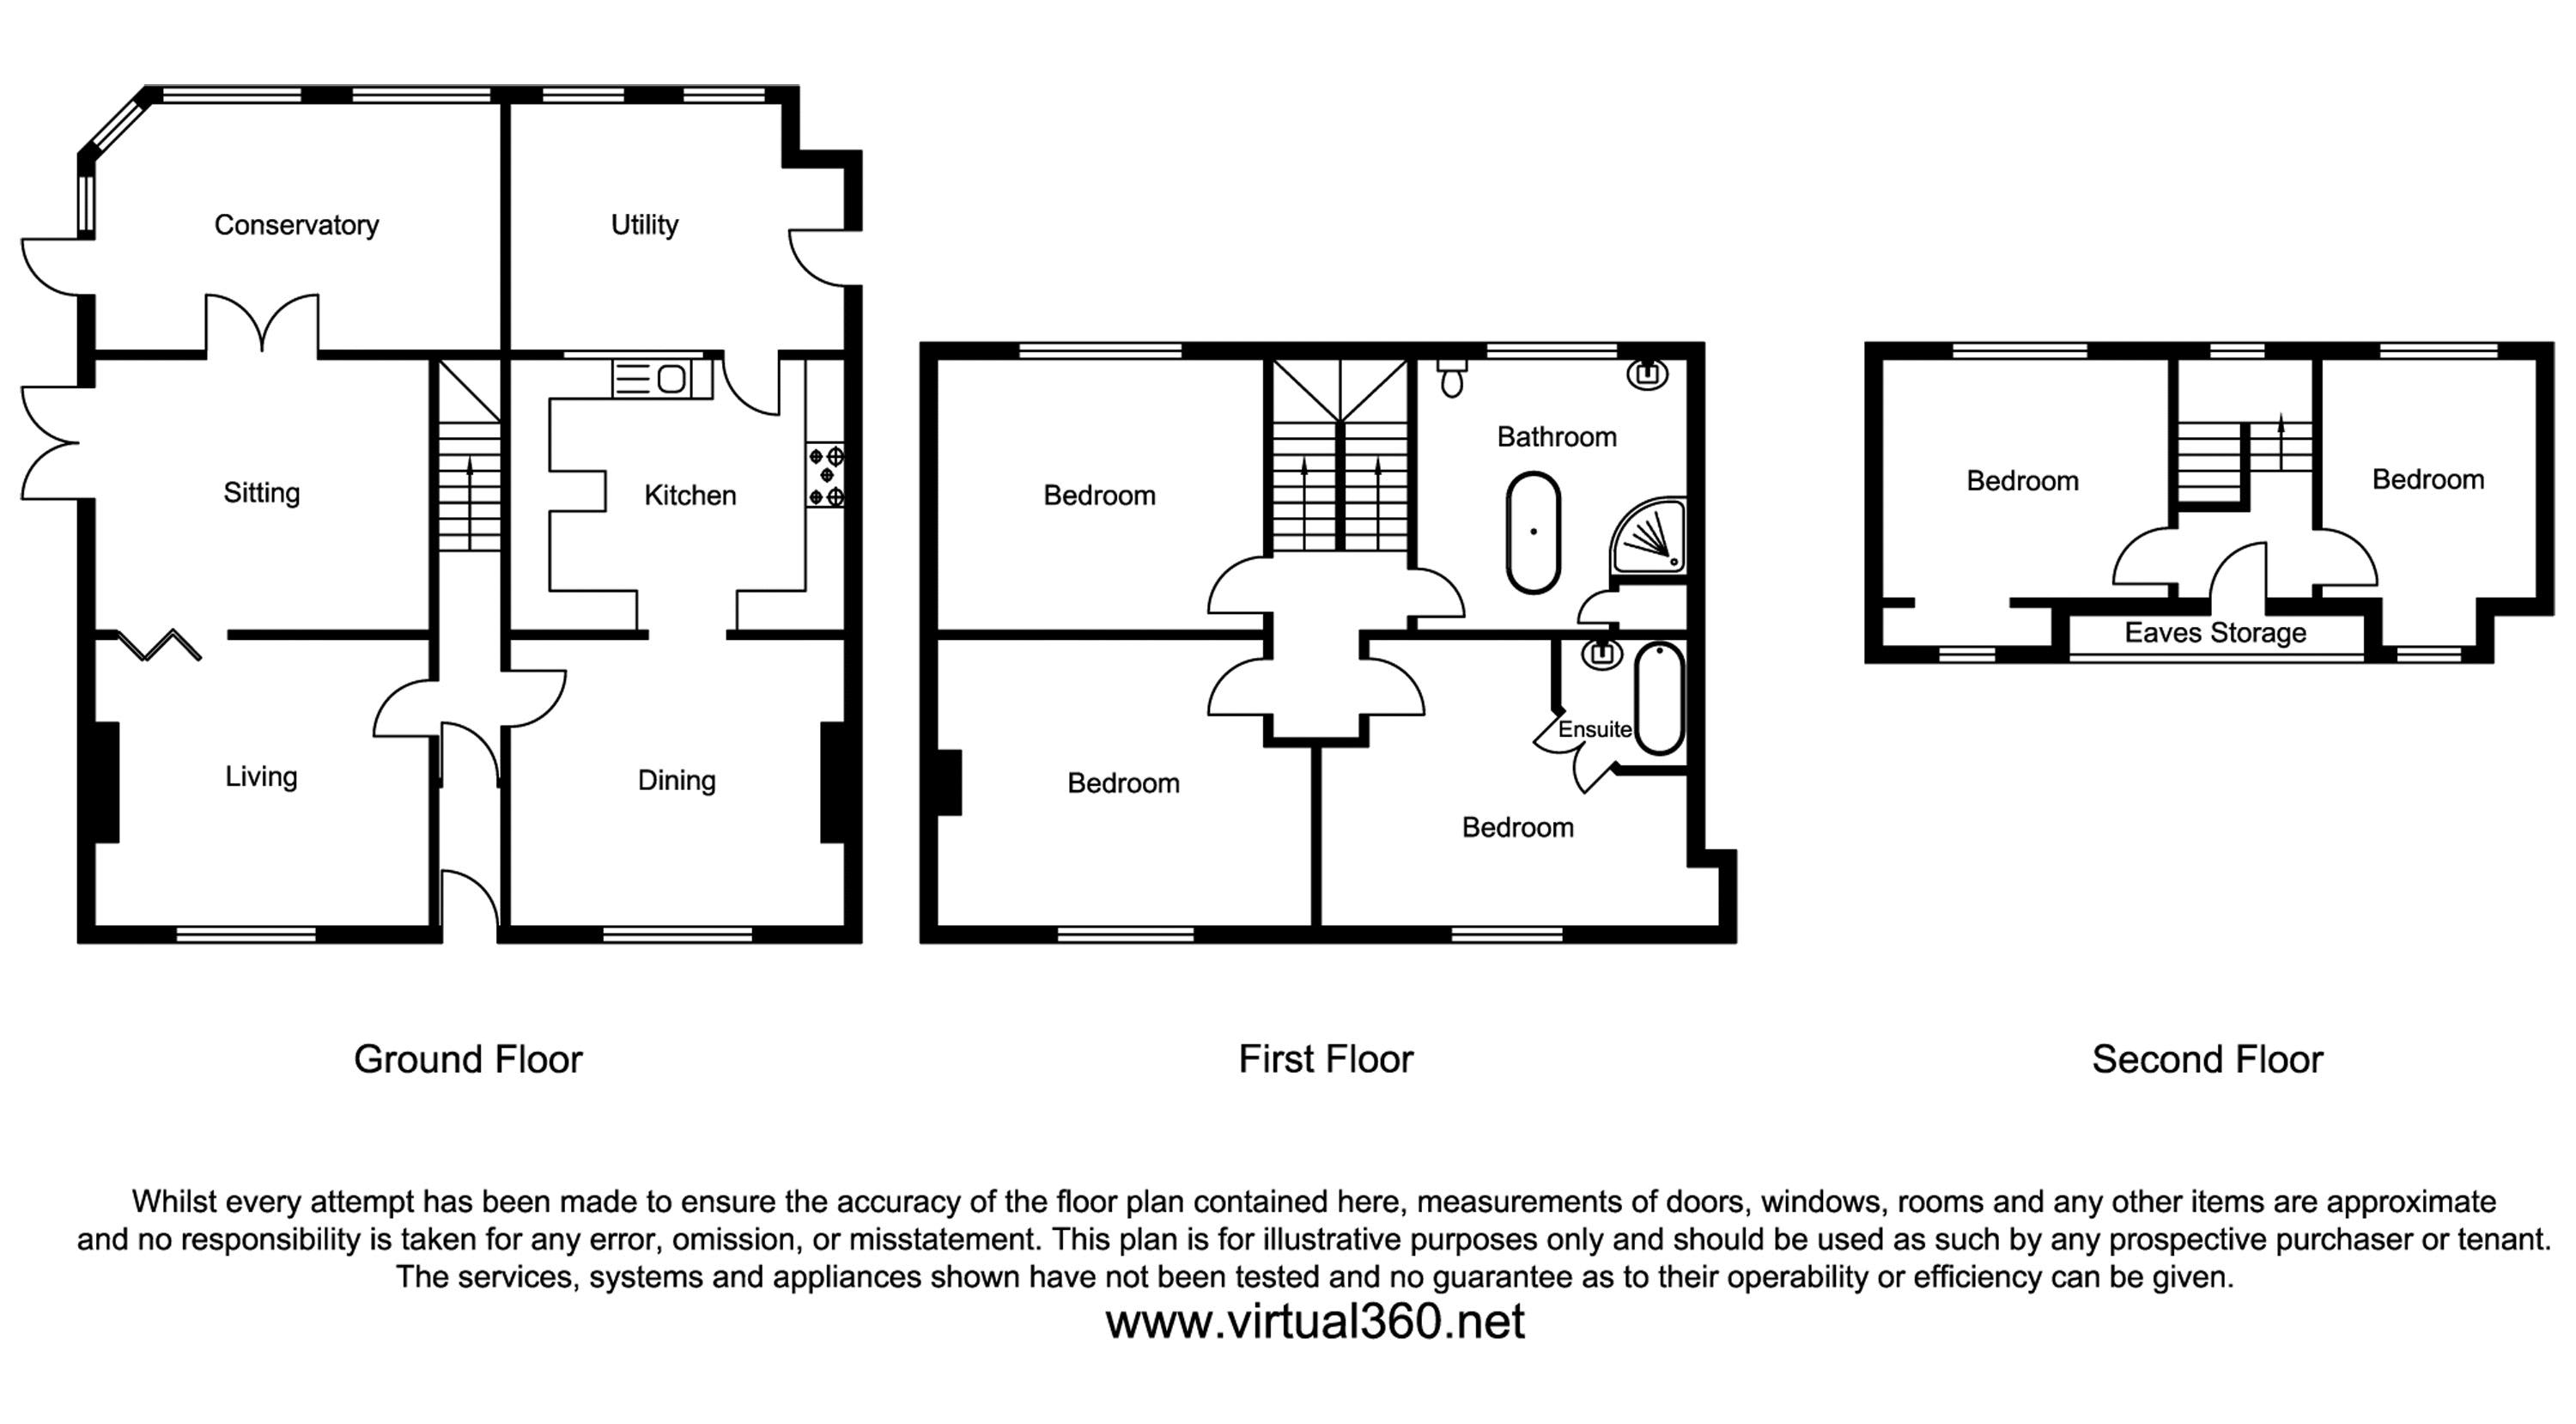 Staines Road, Staines-Upon-Thames, Wraysbury, Berkshire floor plan